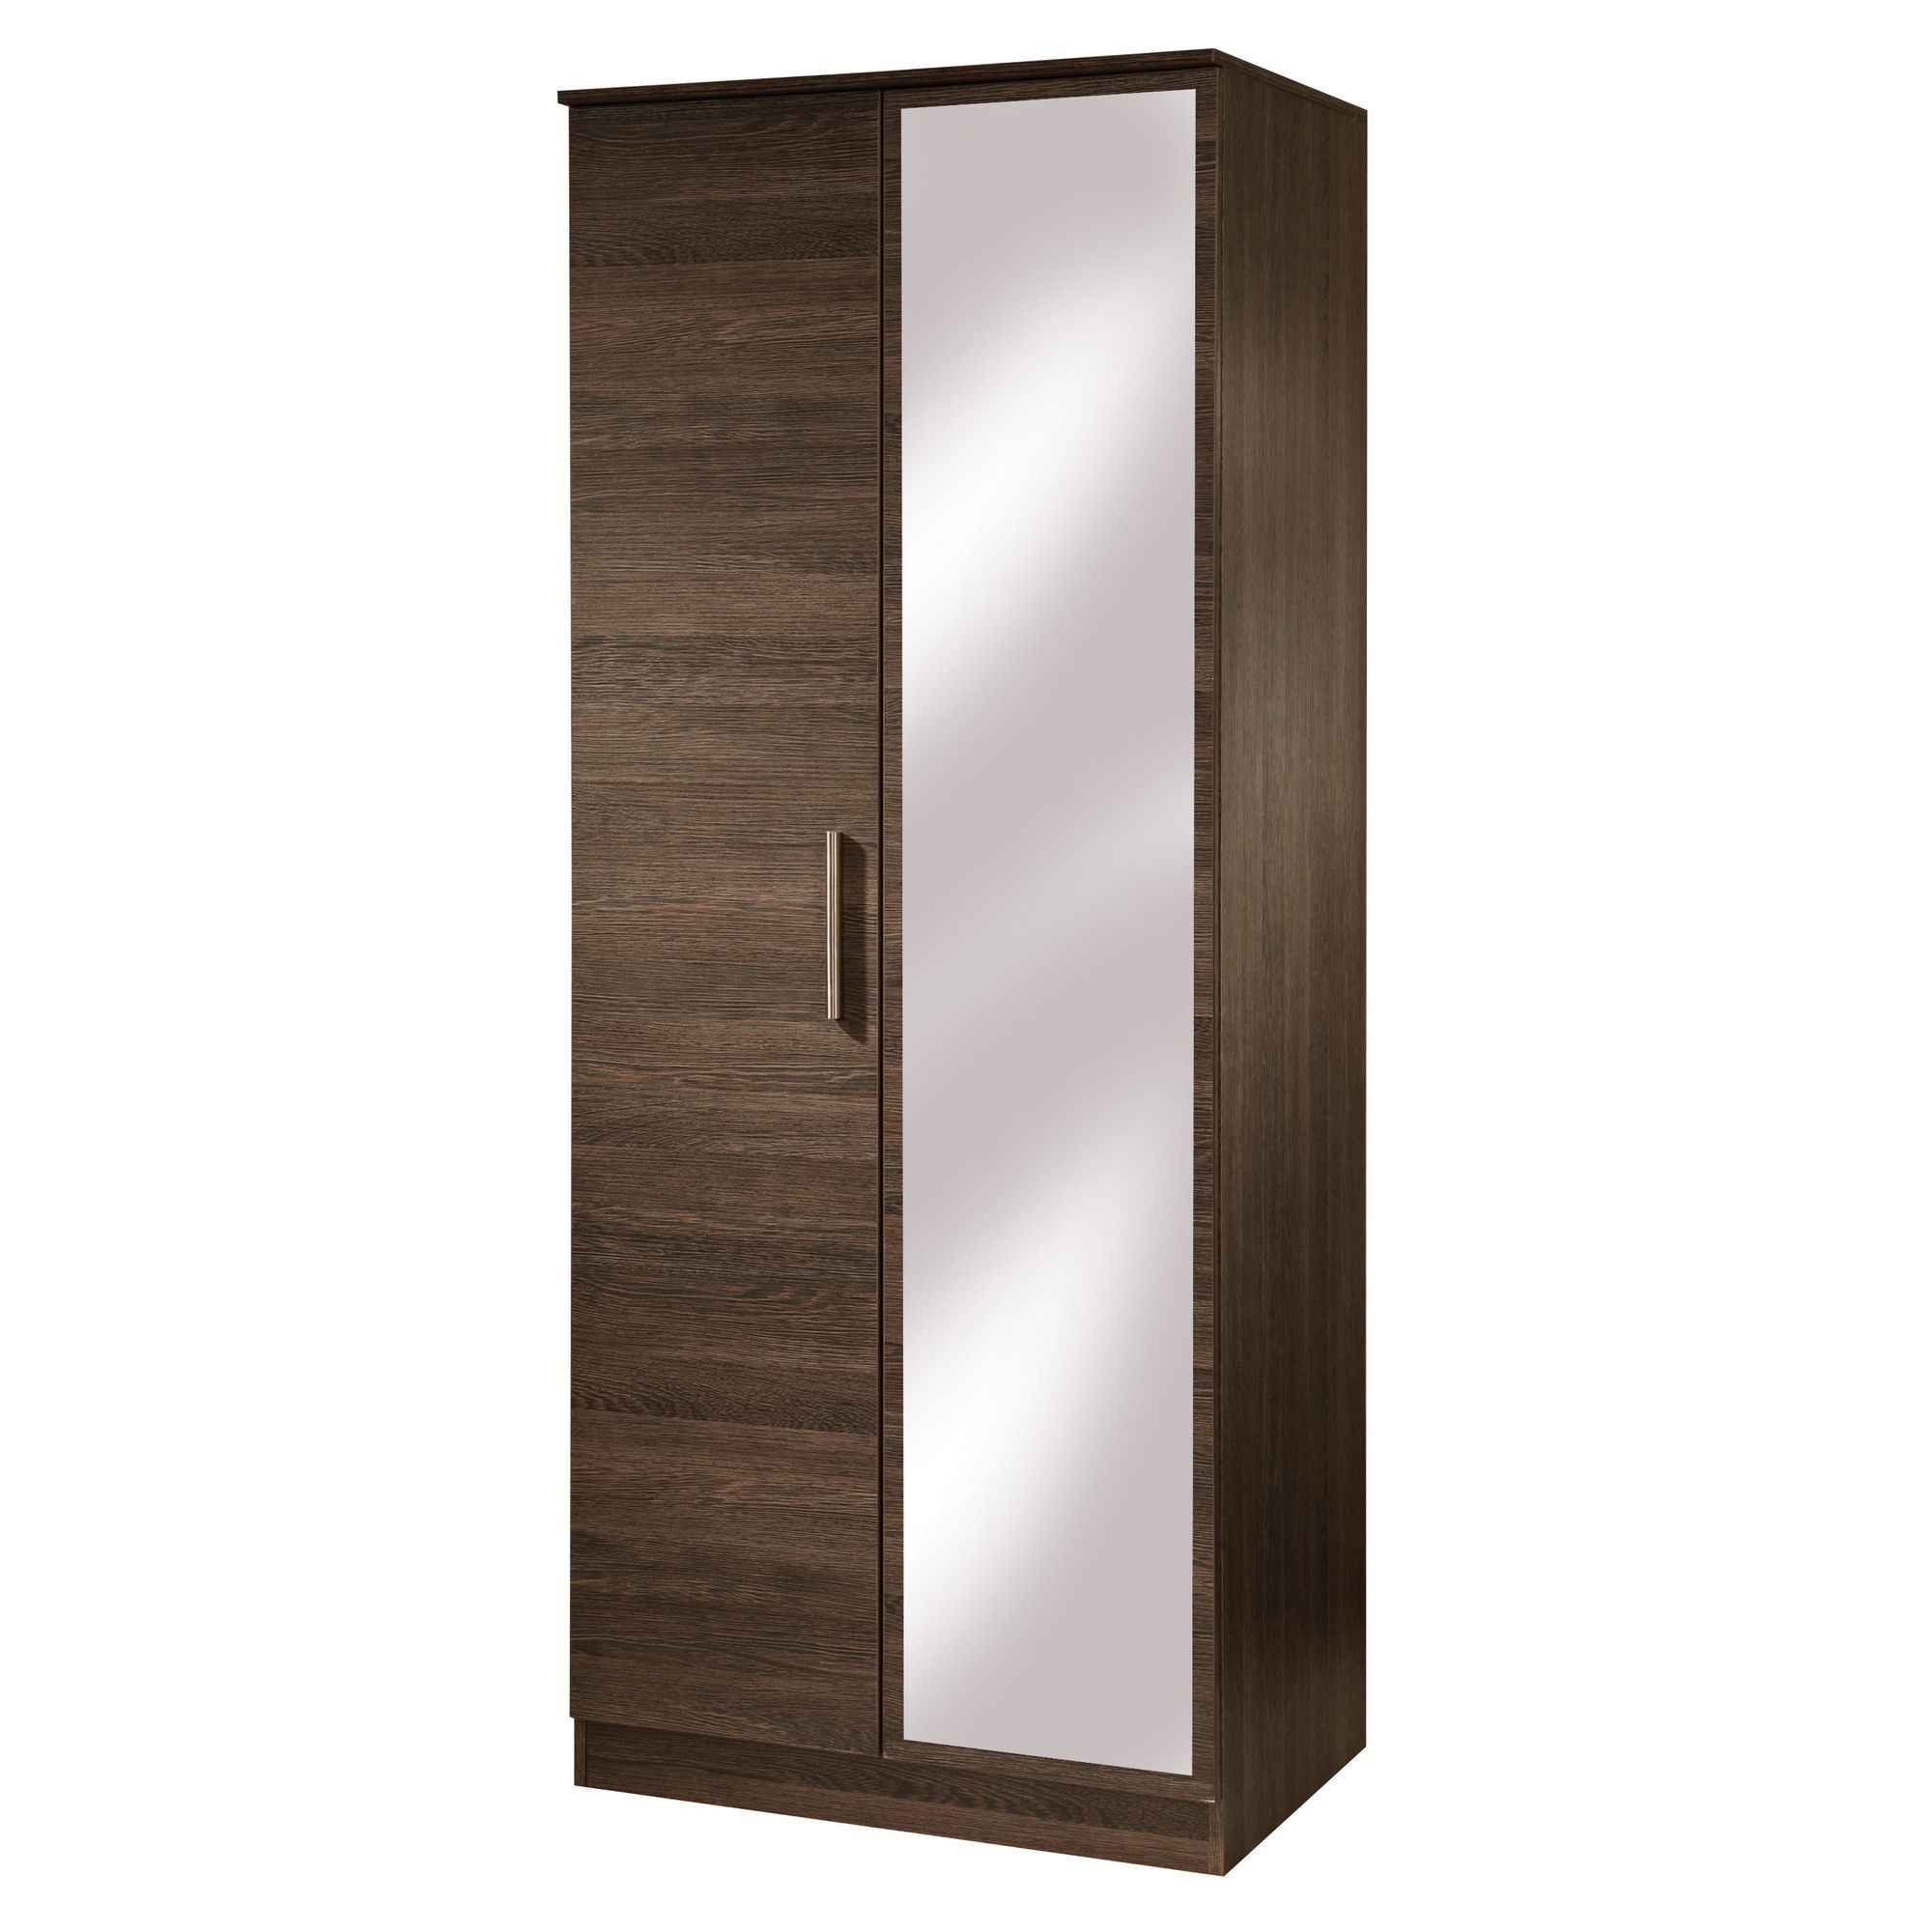 Welcome Furniture Contrast Tall Mirror Wardrobe - Cocobola at Tesco Direct